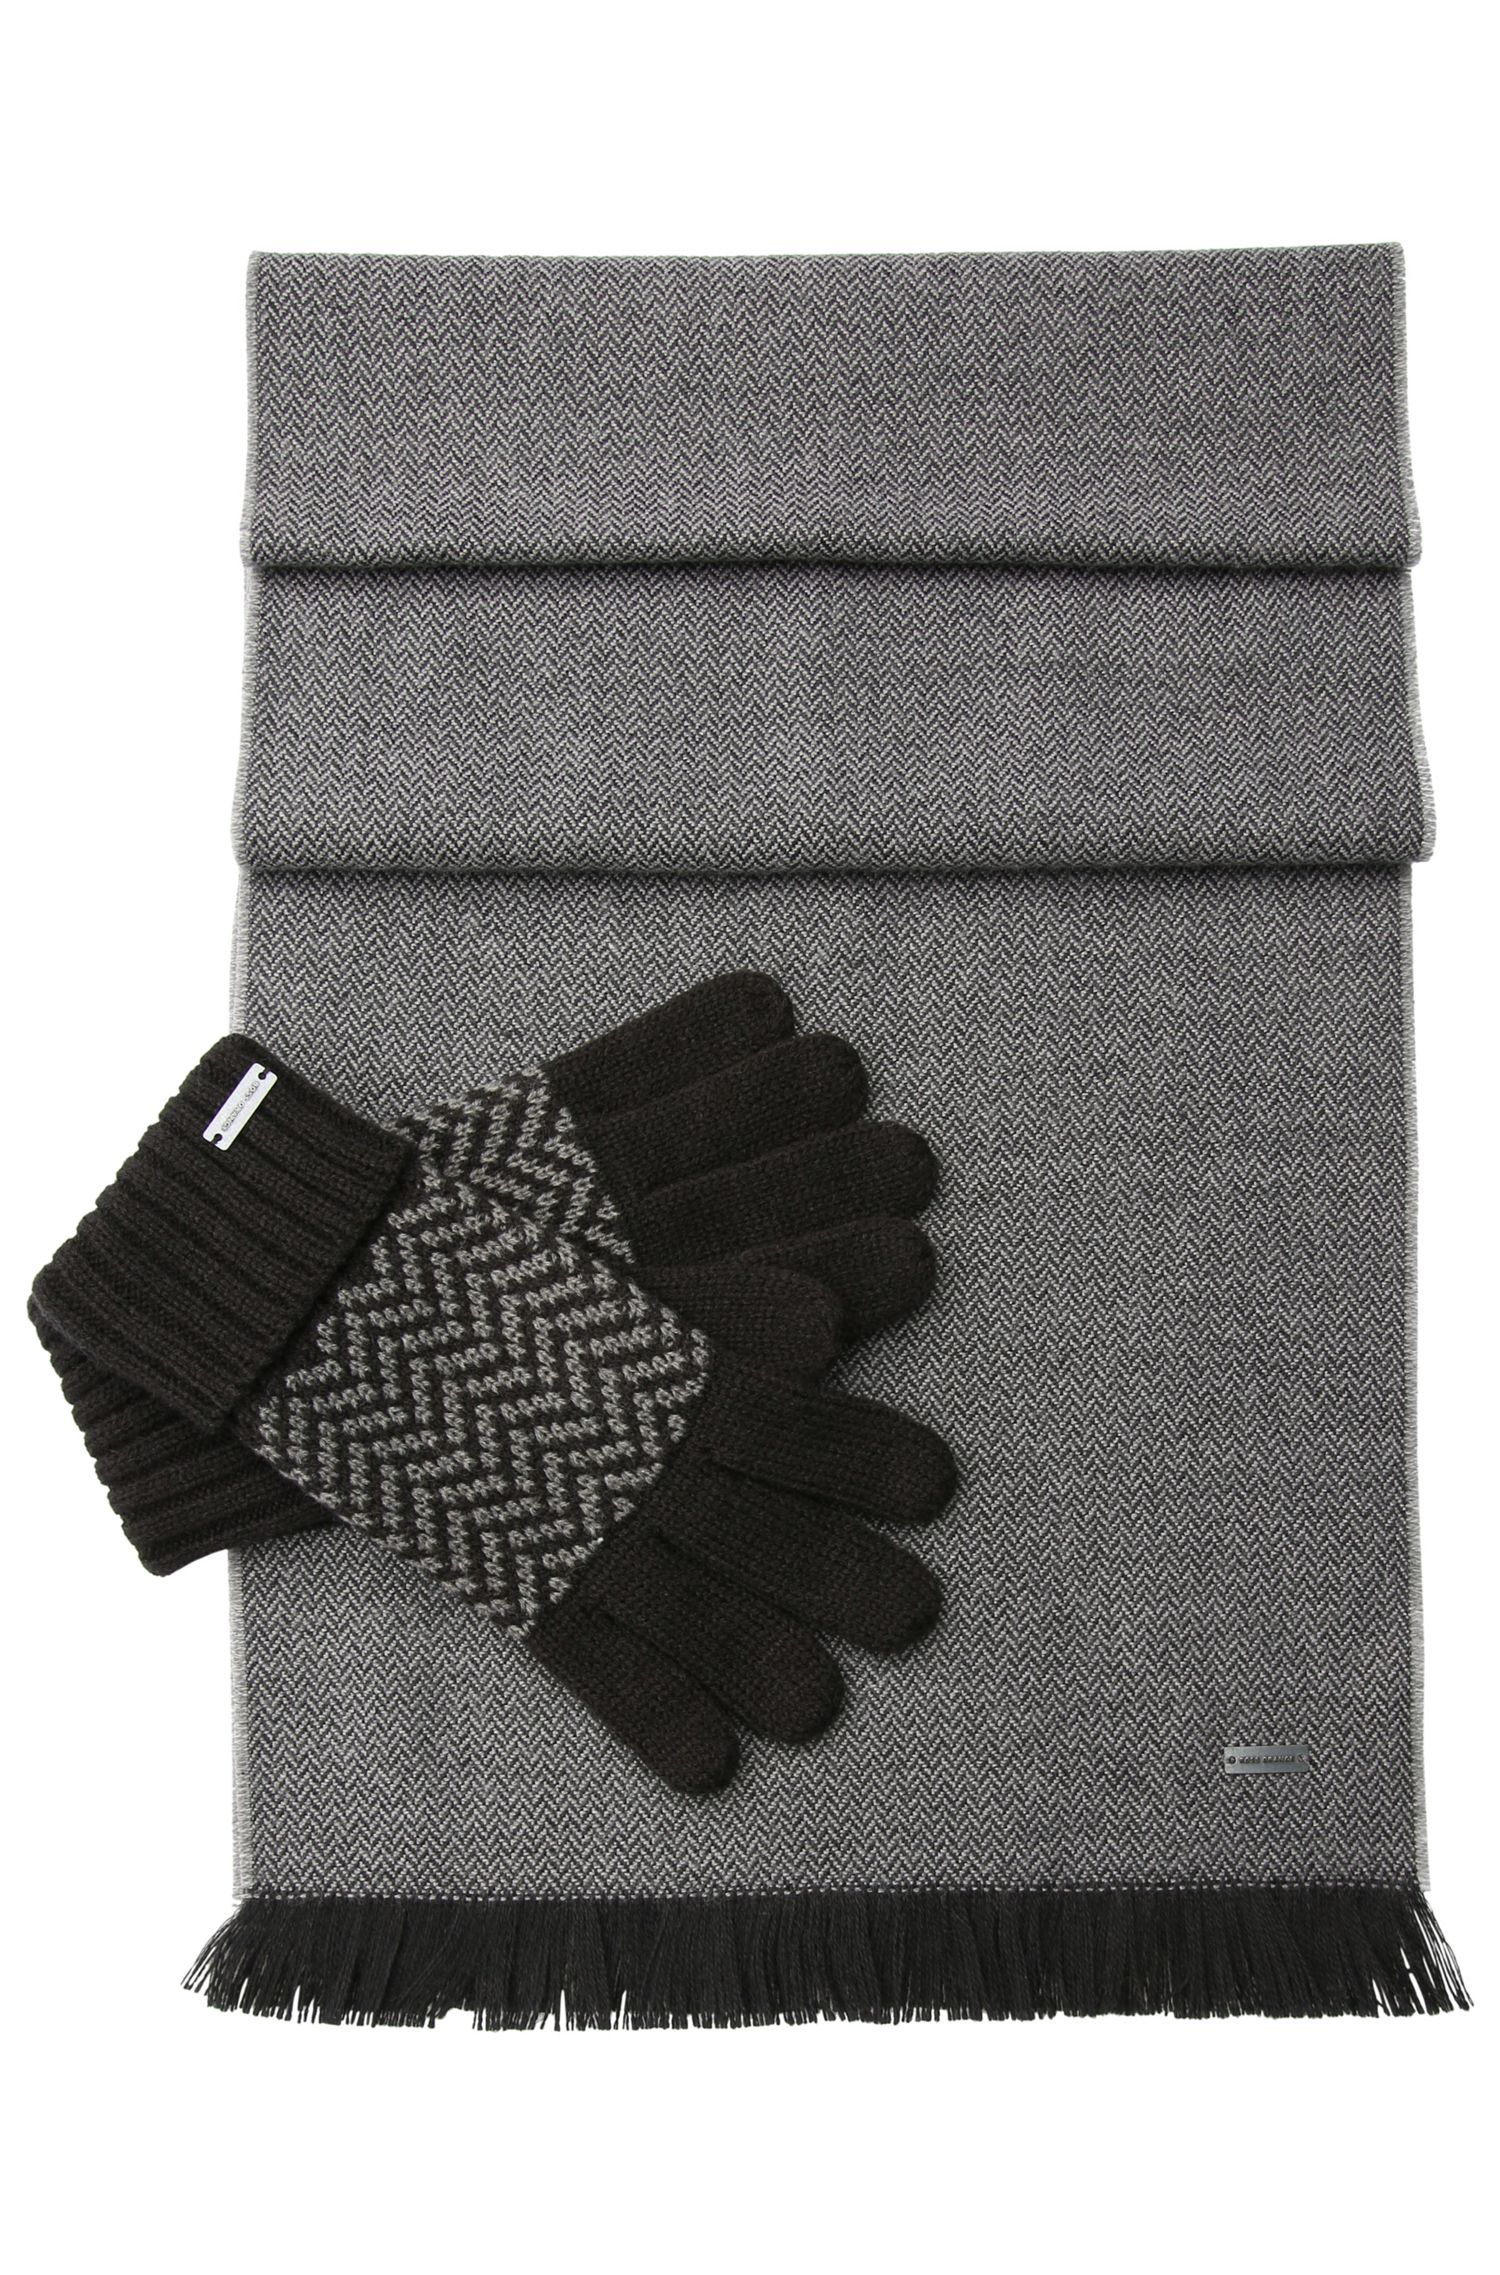 'N-Set' | Wool Blend Scarf, Gloves Set